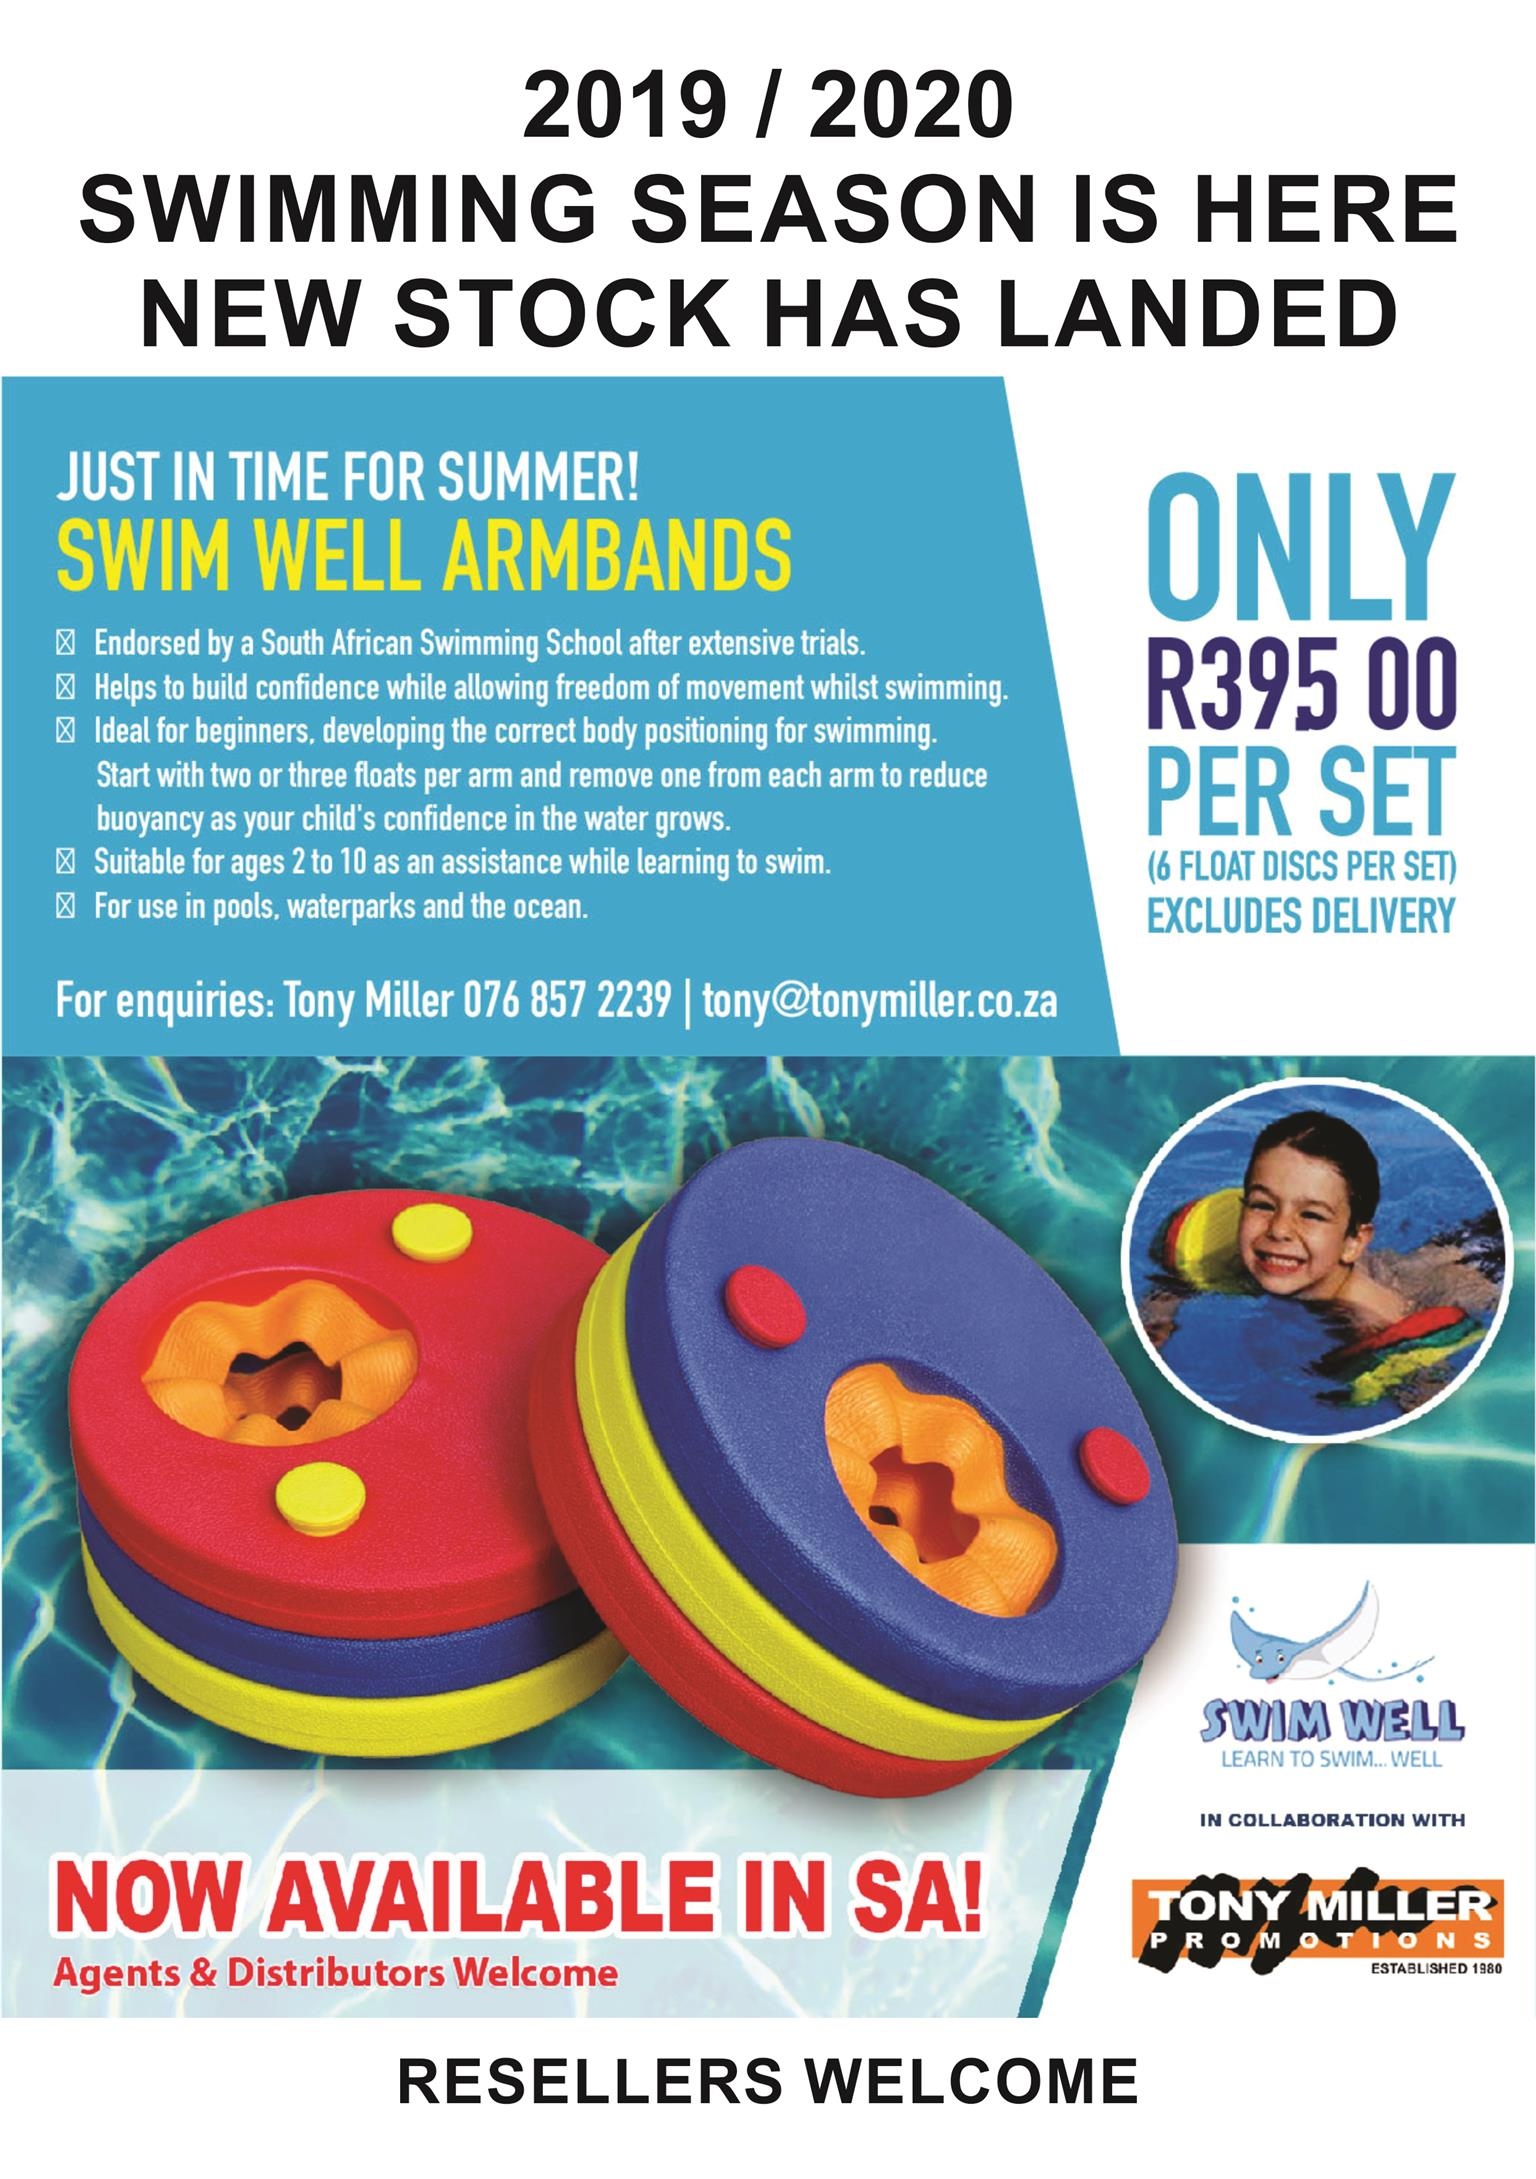 SWIMWELL EVA ARMBANDS